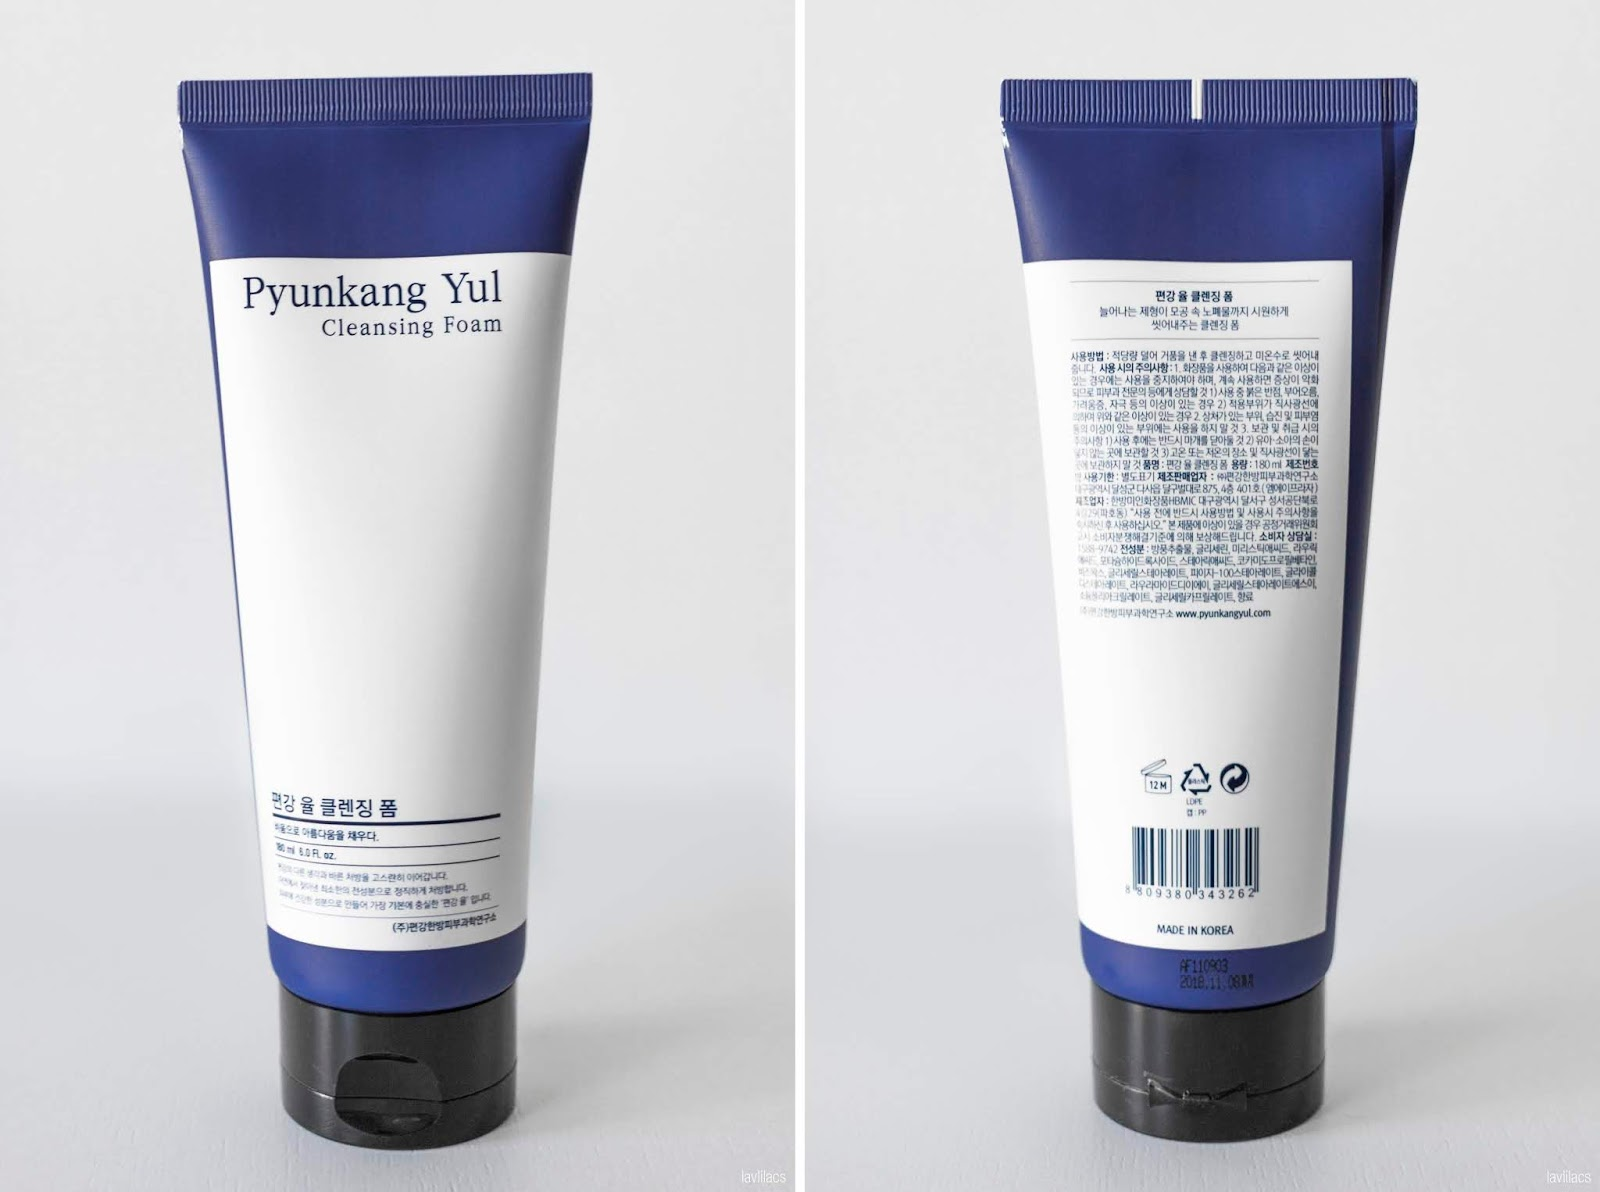 lavlilacs Pyunkang Yul Cleansing Foam tube front and back